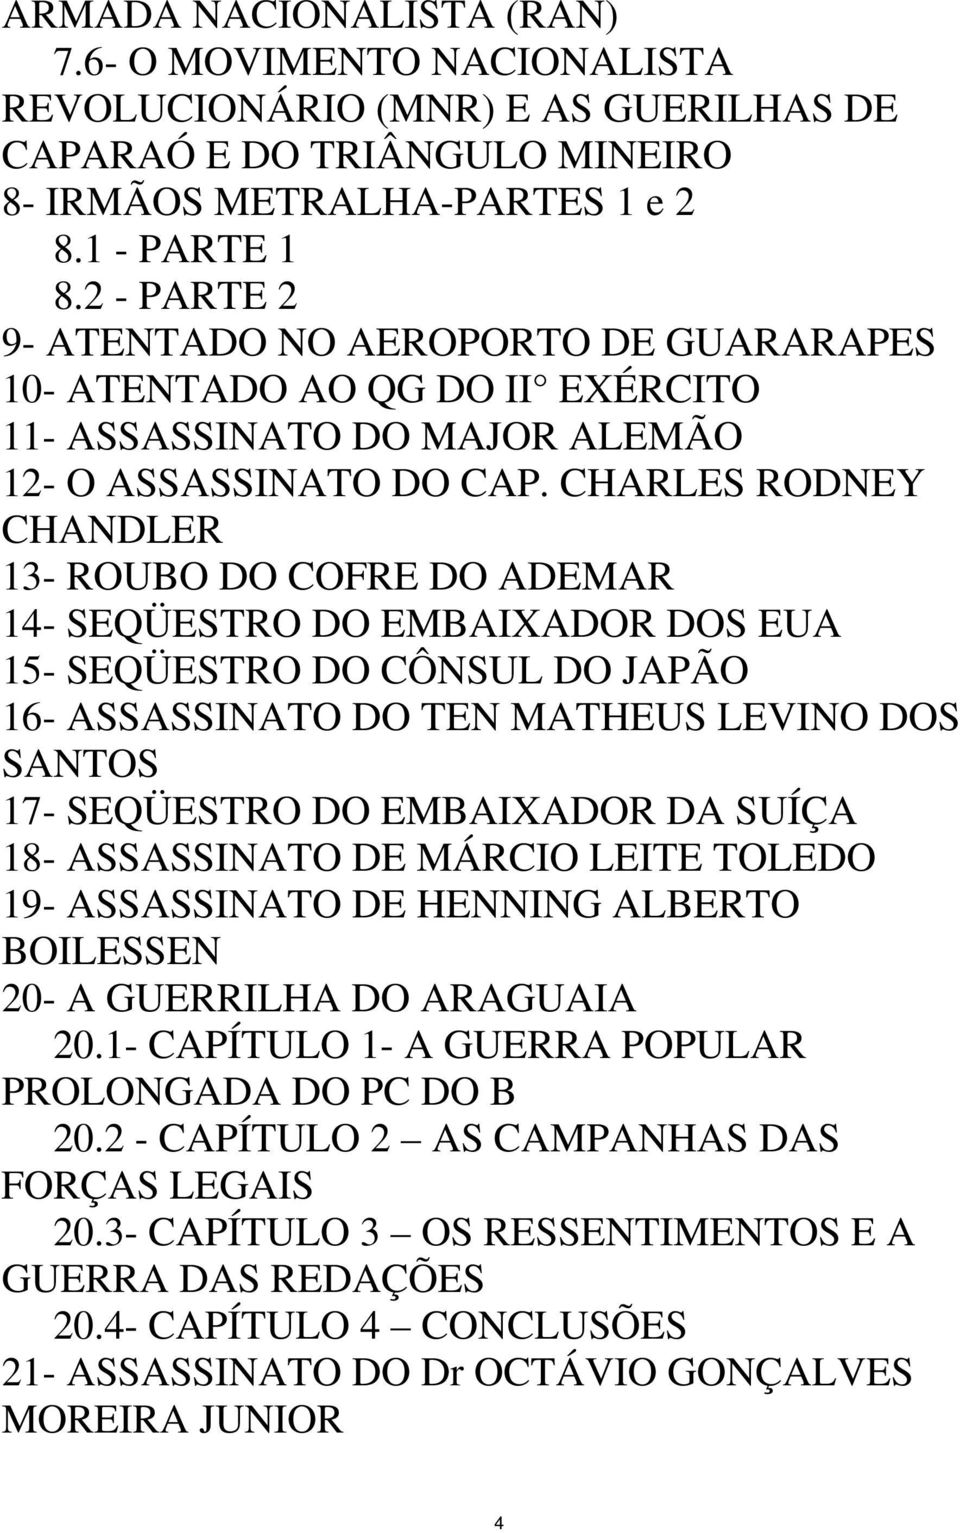 CHARLES RODNEY CHANDLER 13- ROUBO DO COFRE DO ADEMAR 14- SEQÜESTRO DO EMBAIXADOR DOS EUA 15- SEQÜESTRO DO CÔNSUL DO JAPÃO 16- ASSASSINATO DO TEN MATHEUS LEVINO DOS SANTOS 17- SEQÜESTRO DO EMBAIXADOR